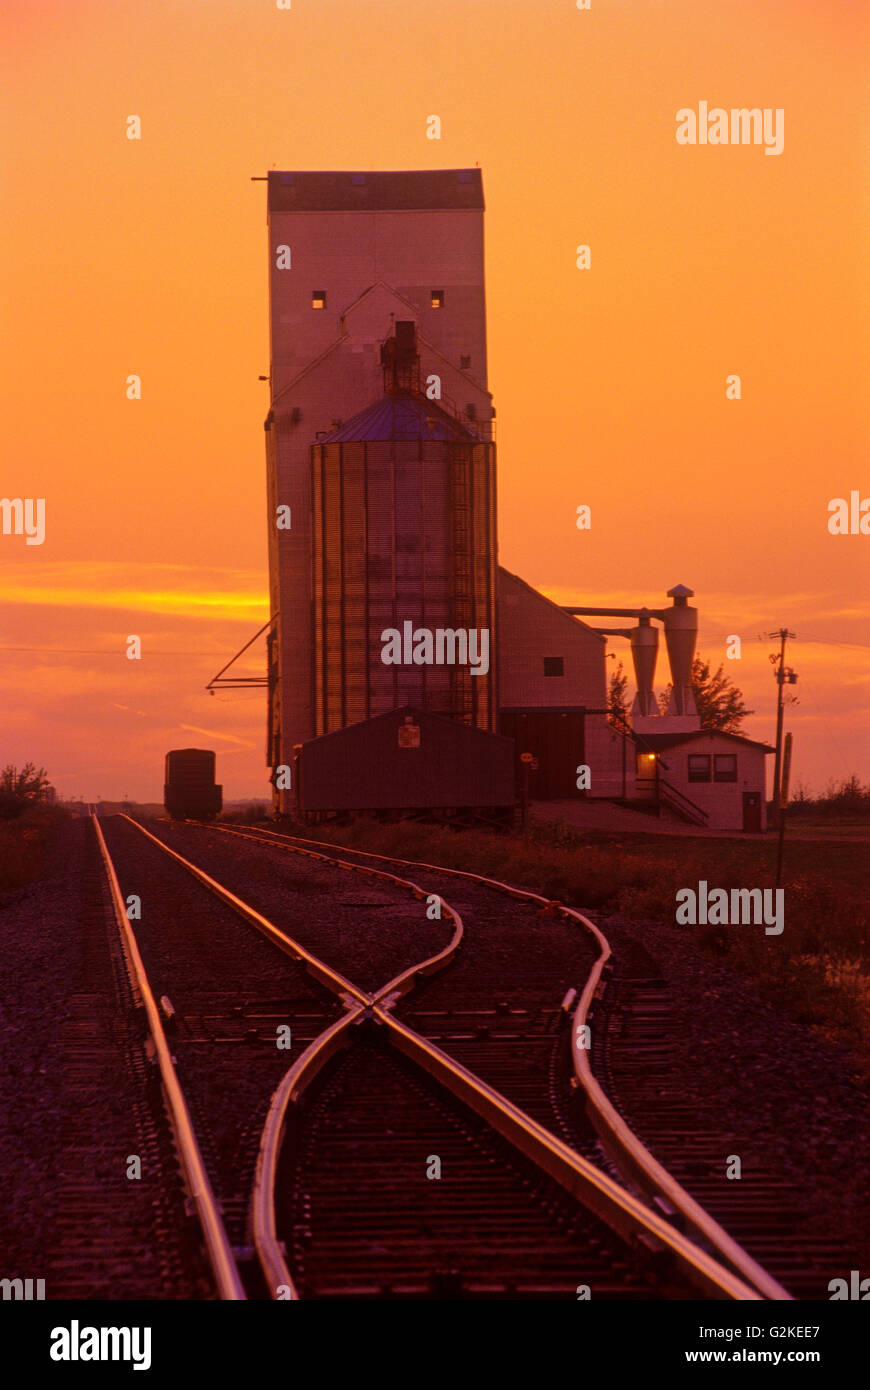 Grain elevator and rail tracks silhouetted against a sunset sky Wolseley Saskatchewan Canada - Stock Image